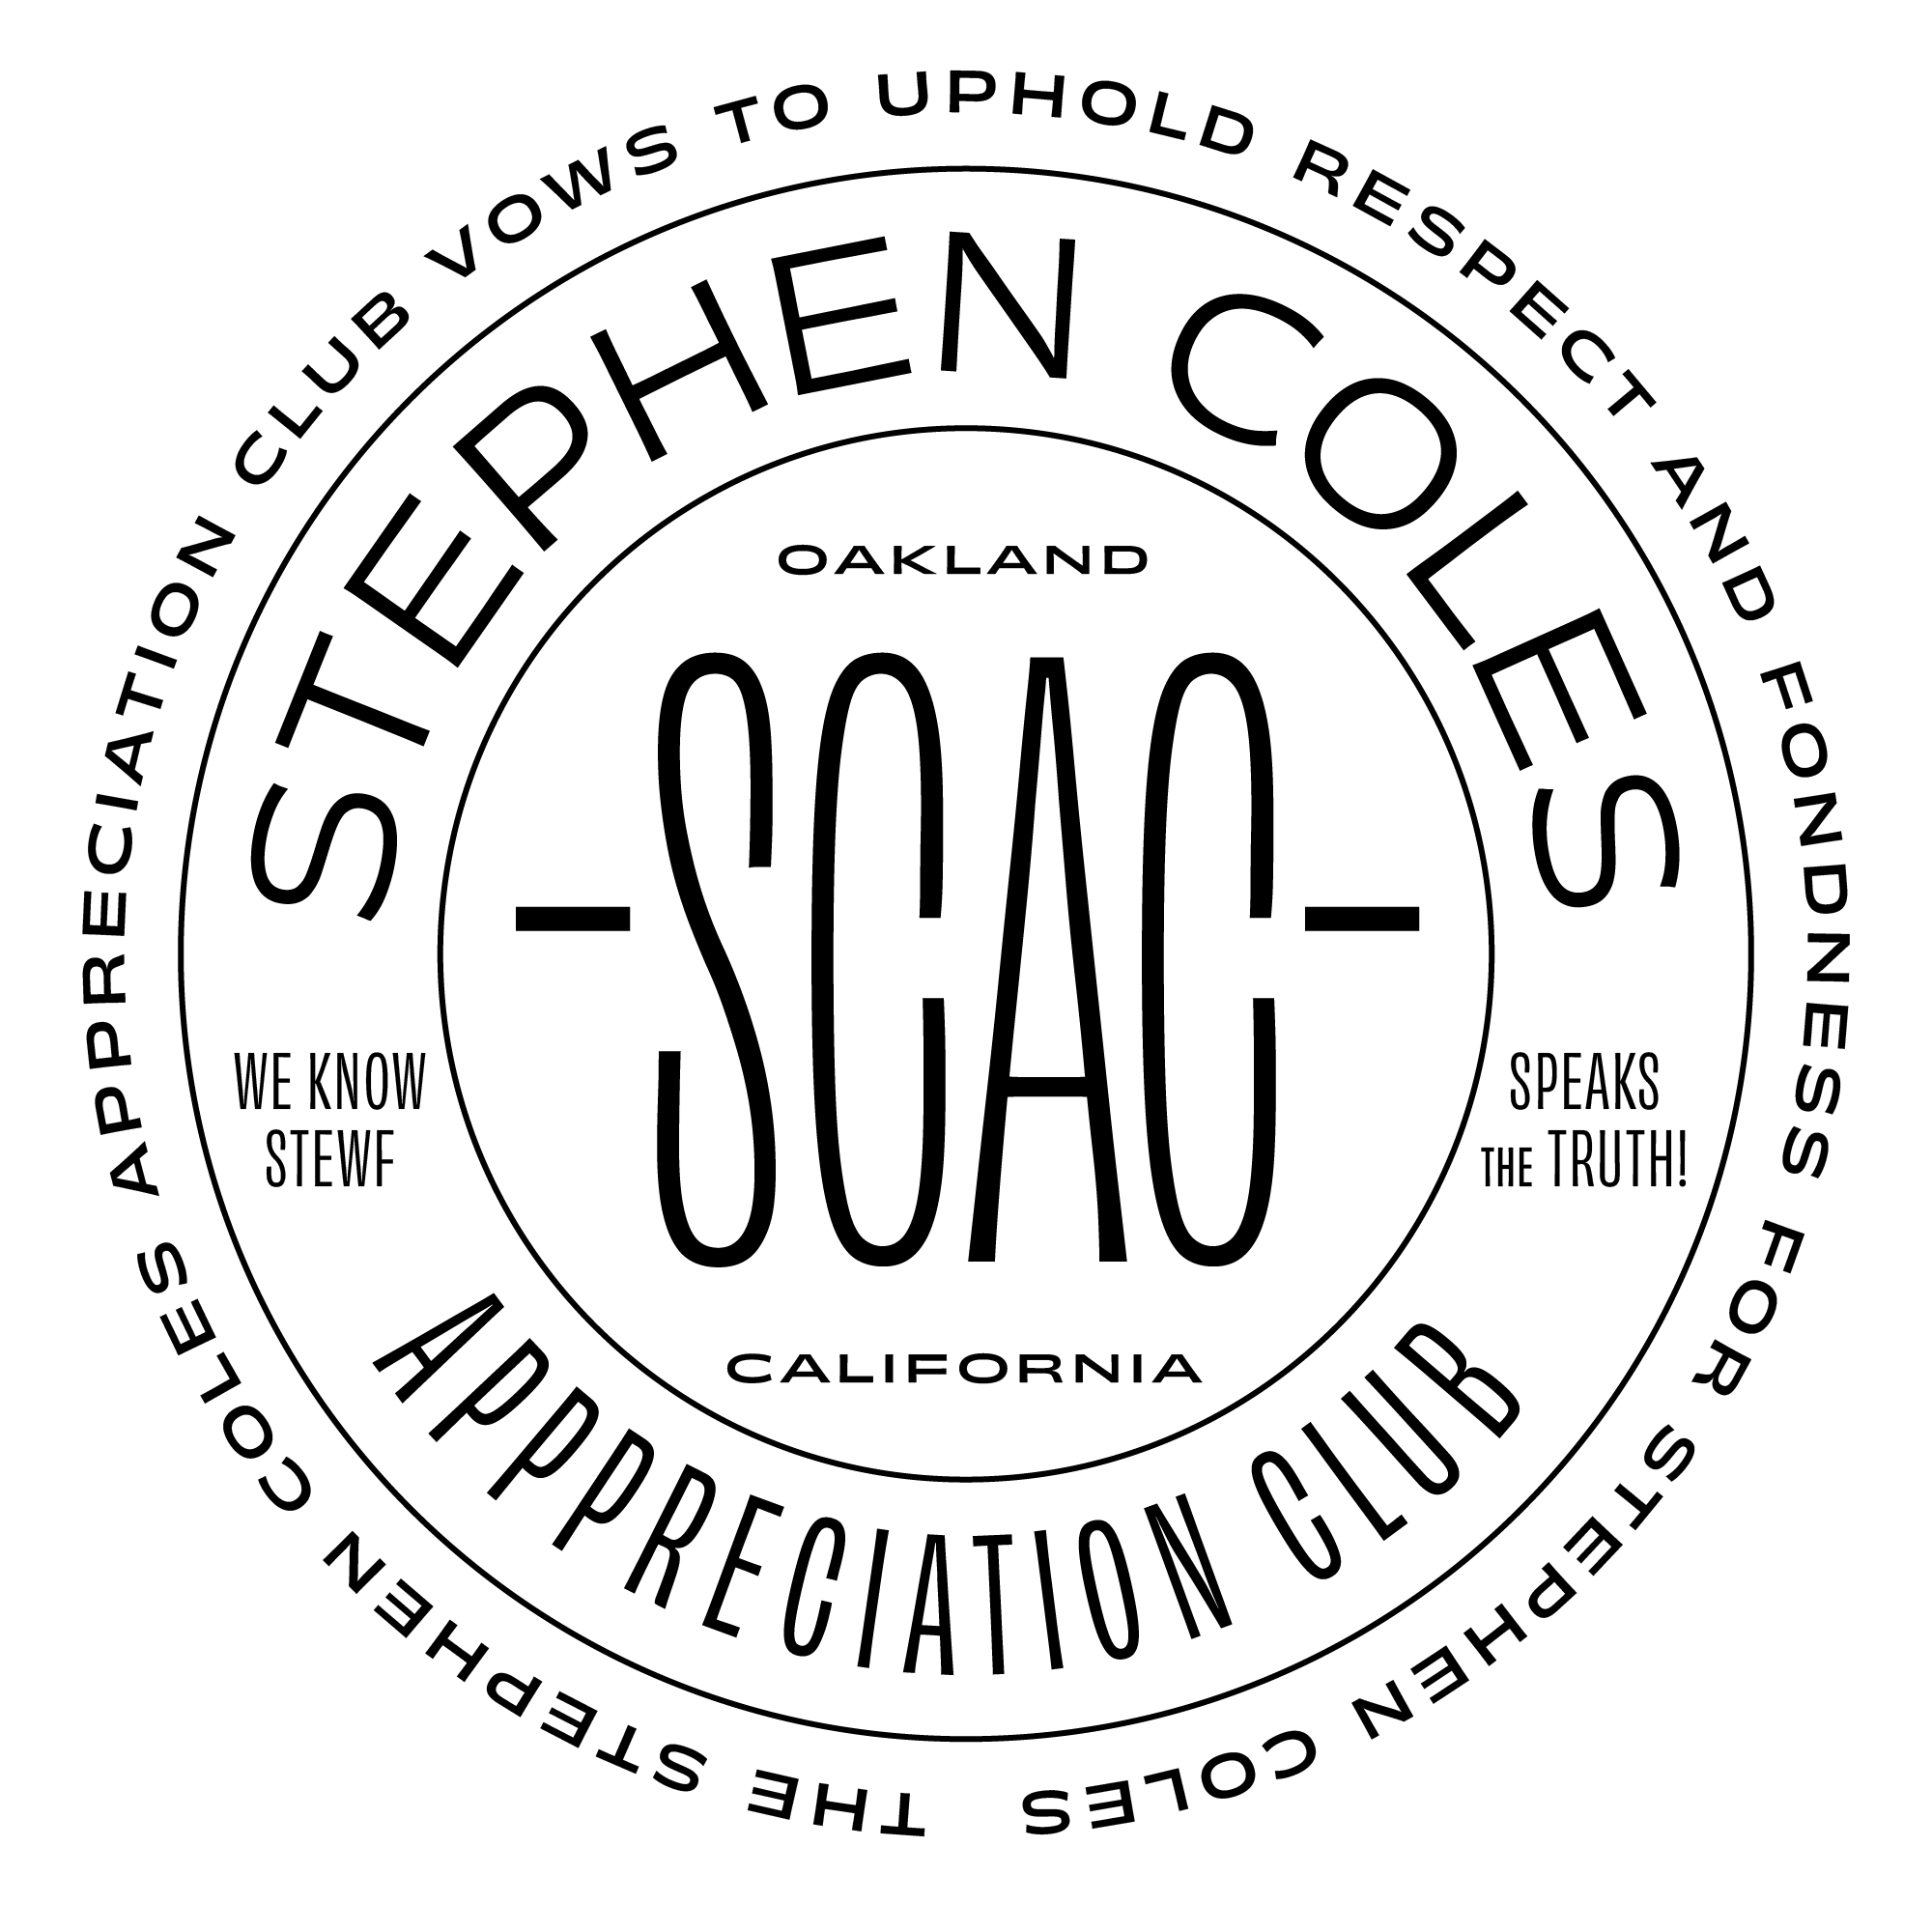 Graphic by James Edmondson paying homage to Stephen Coles: a round graphic that says SCAC, or Stephen Coles Appreciation Club.